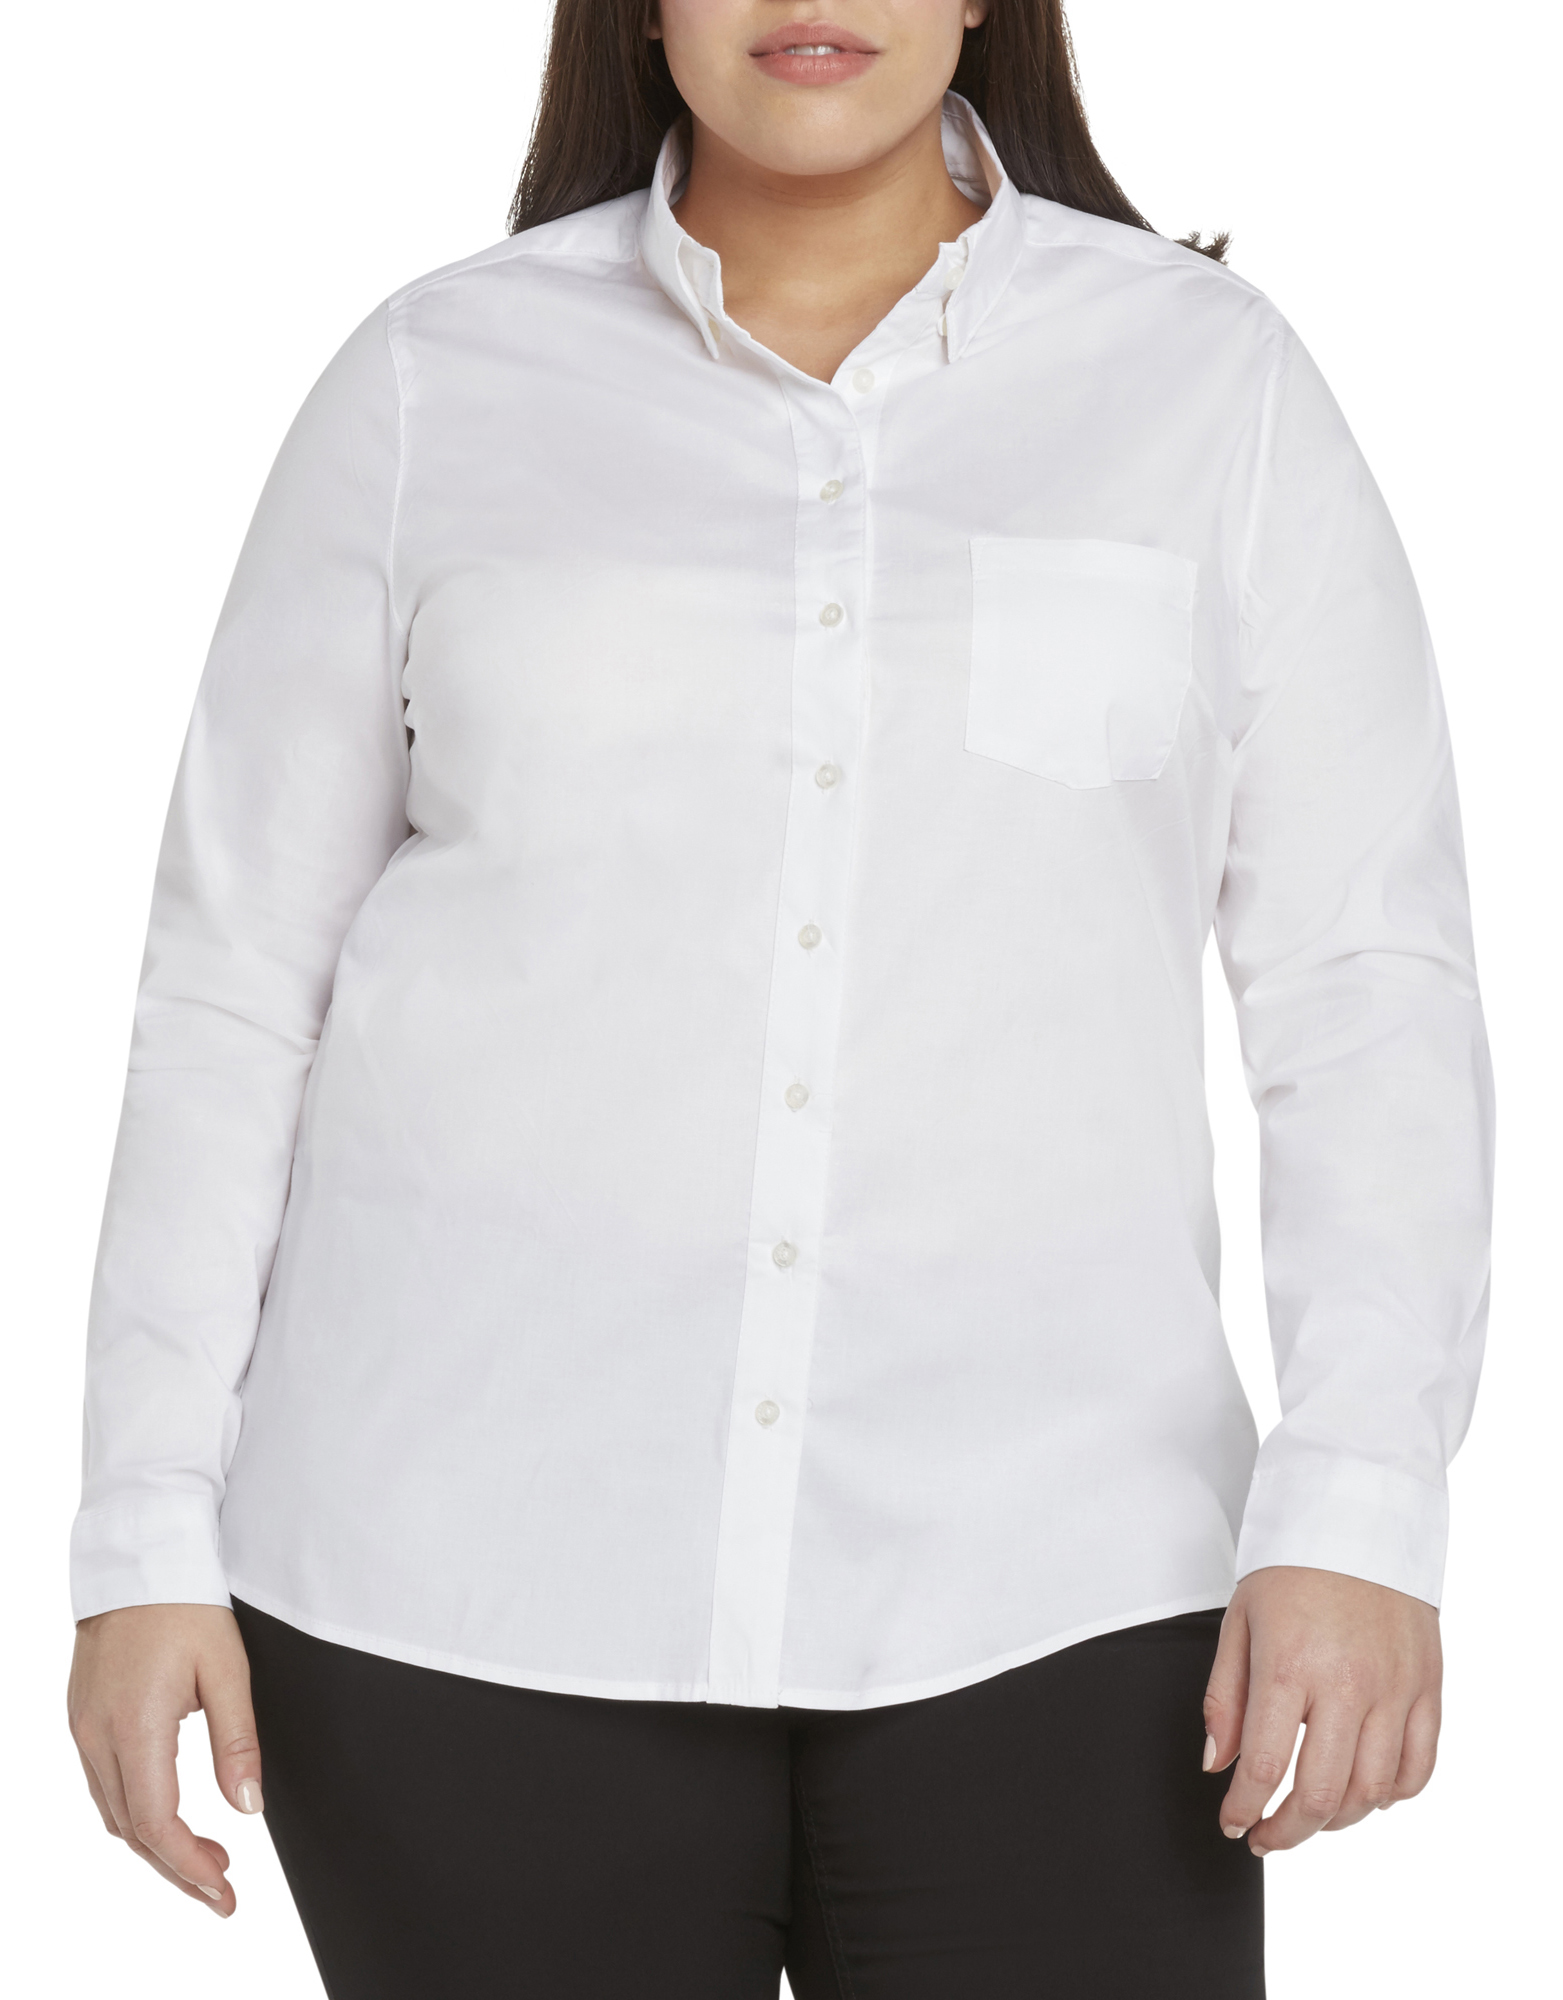 2aad1787a Dickies Girl Juniors' Plus Size Long Sleeve Poplin Button Down Shirt -  White (WHT